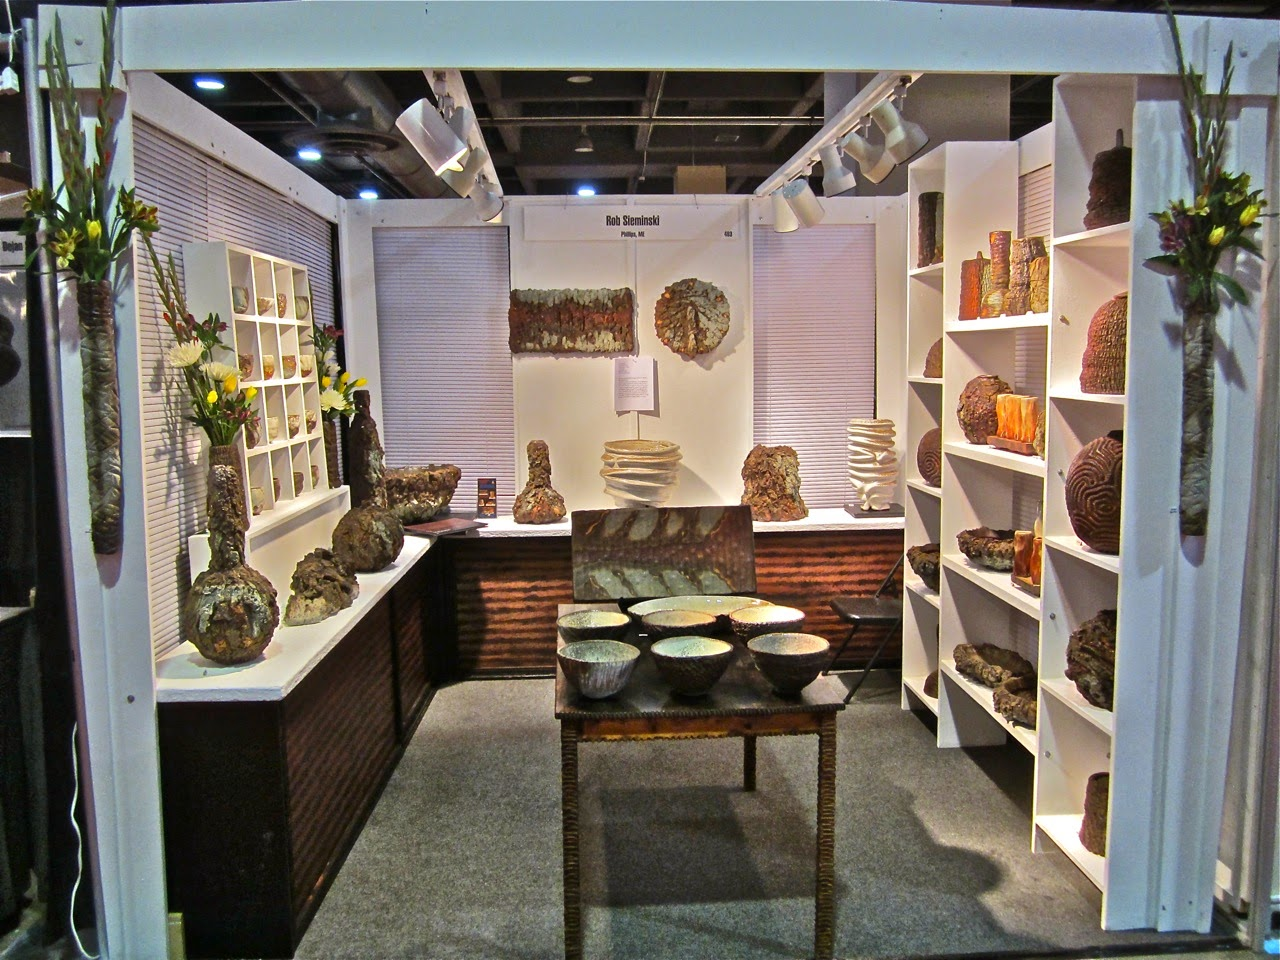 Rob sieminski ceramics philadelphia craft show booth 1 for Craft fair in philadelphia pa